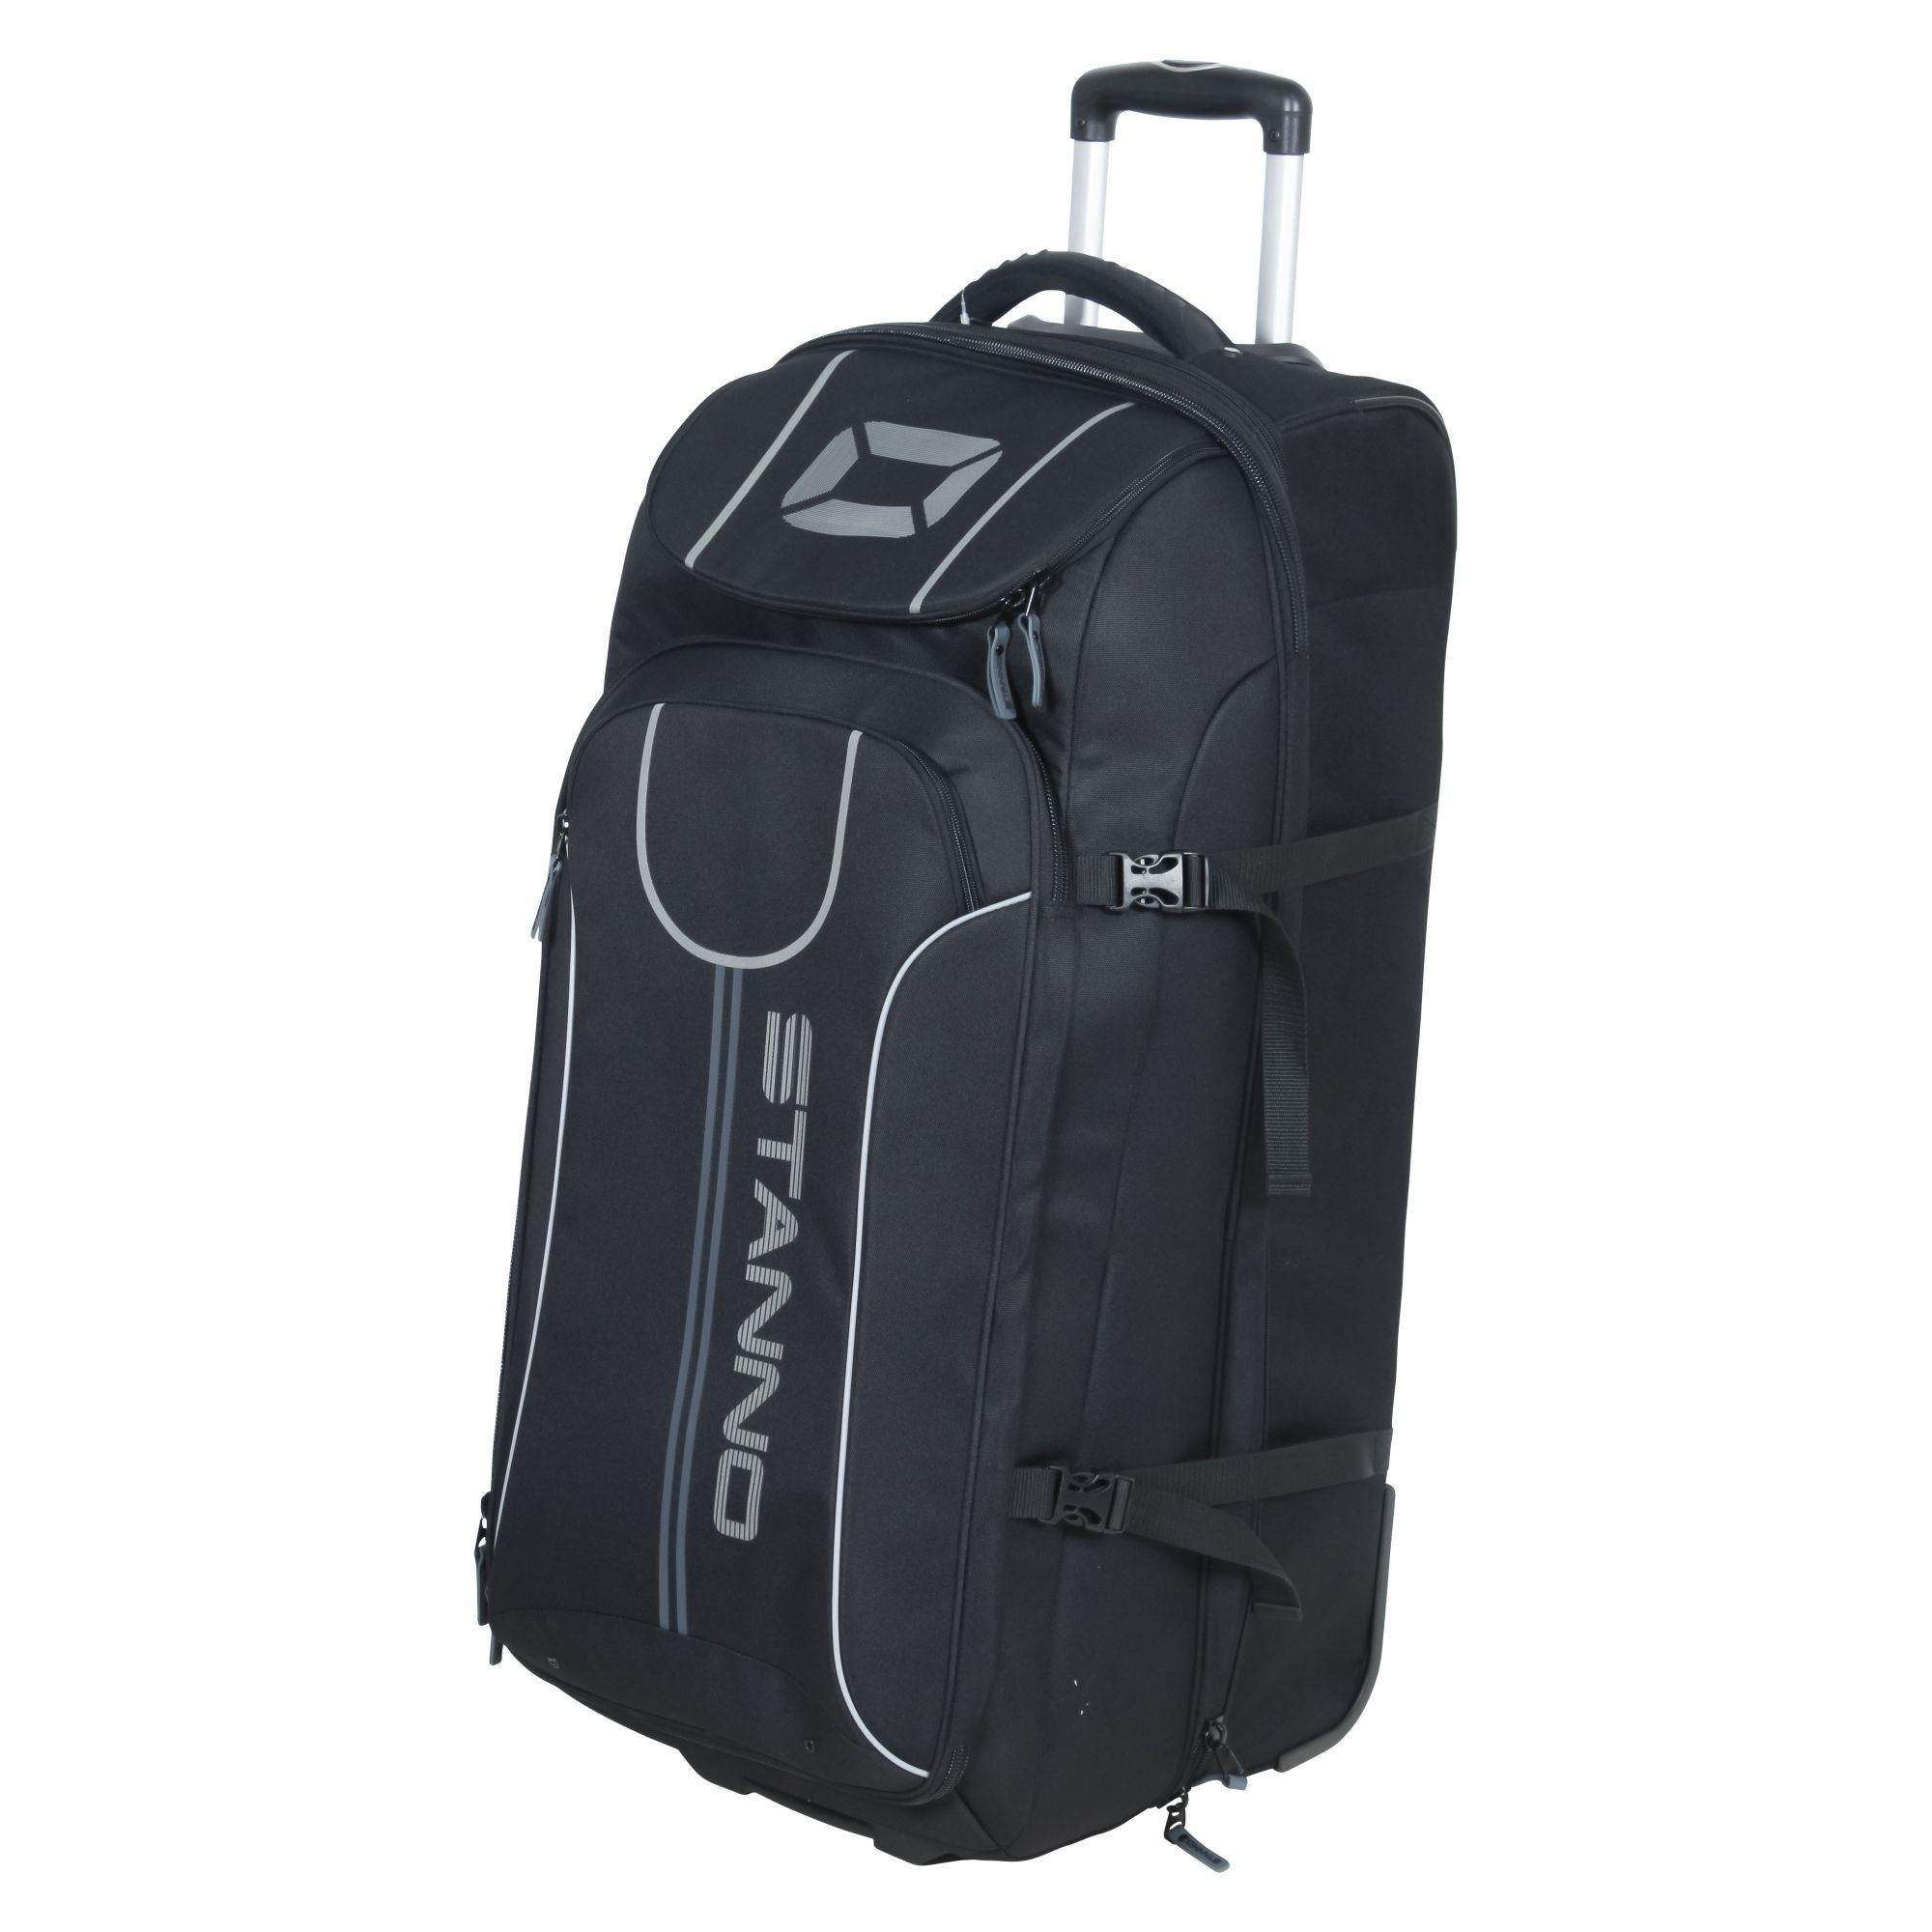 Large Stanno Trolley Bag in black with adjustable handgrip. Stanno printed logo and text.